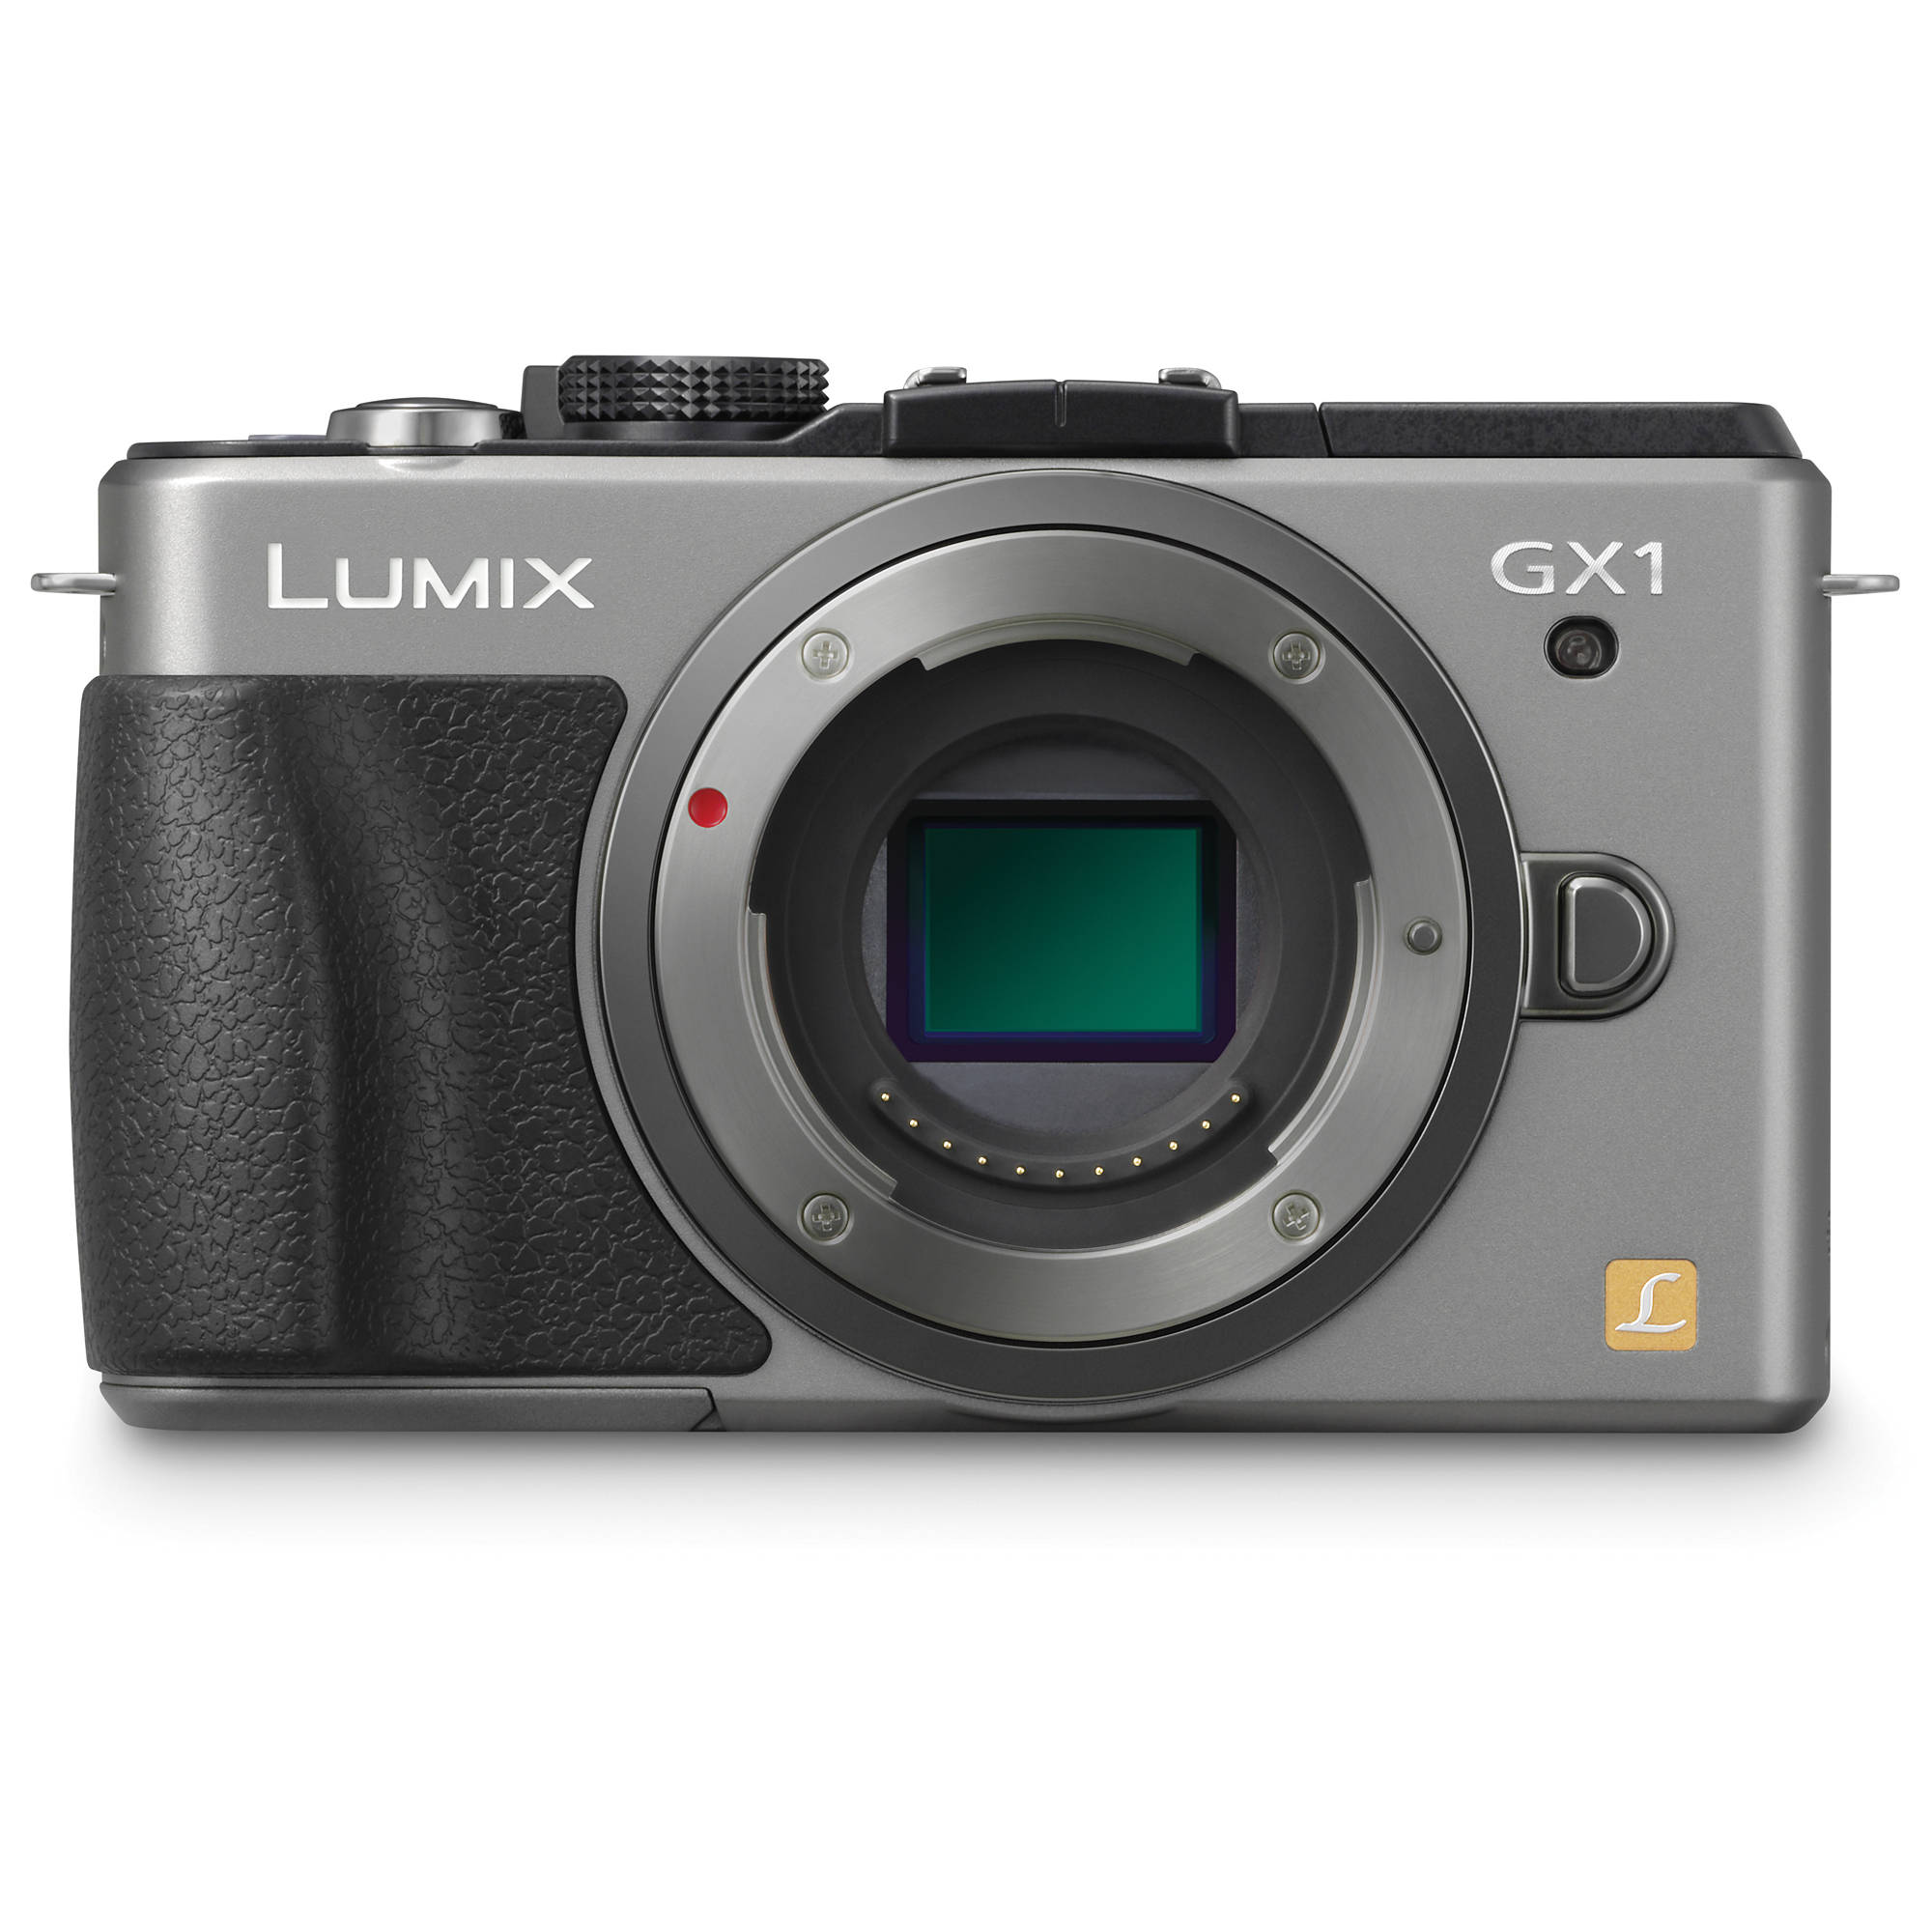 panasonic lumix dmc gx1 mirrorless micro four dmc gx1sbody b h rh bhphotovideo com Lumix LX7 lumix gx1 manual focus assist